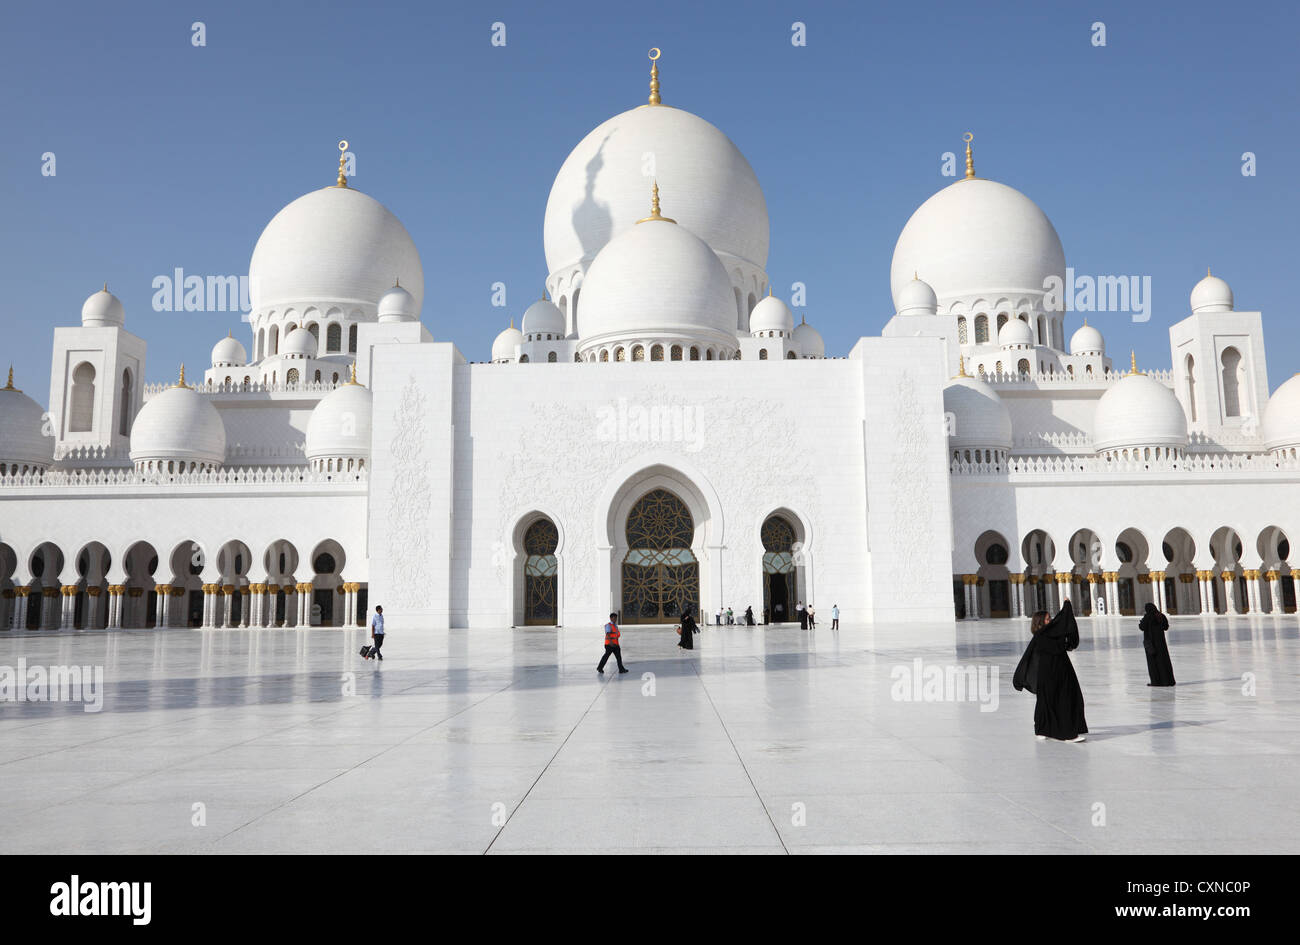 Sheikh Zayed Mosque in Abu Dhabi, United Arab Emirates - Stock Image